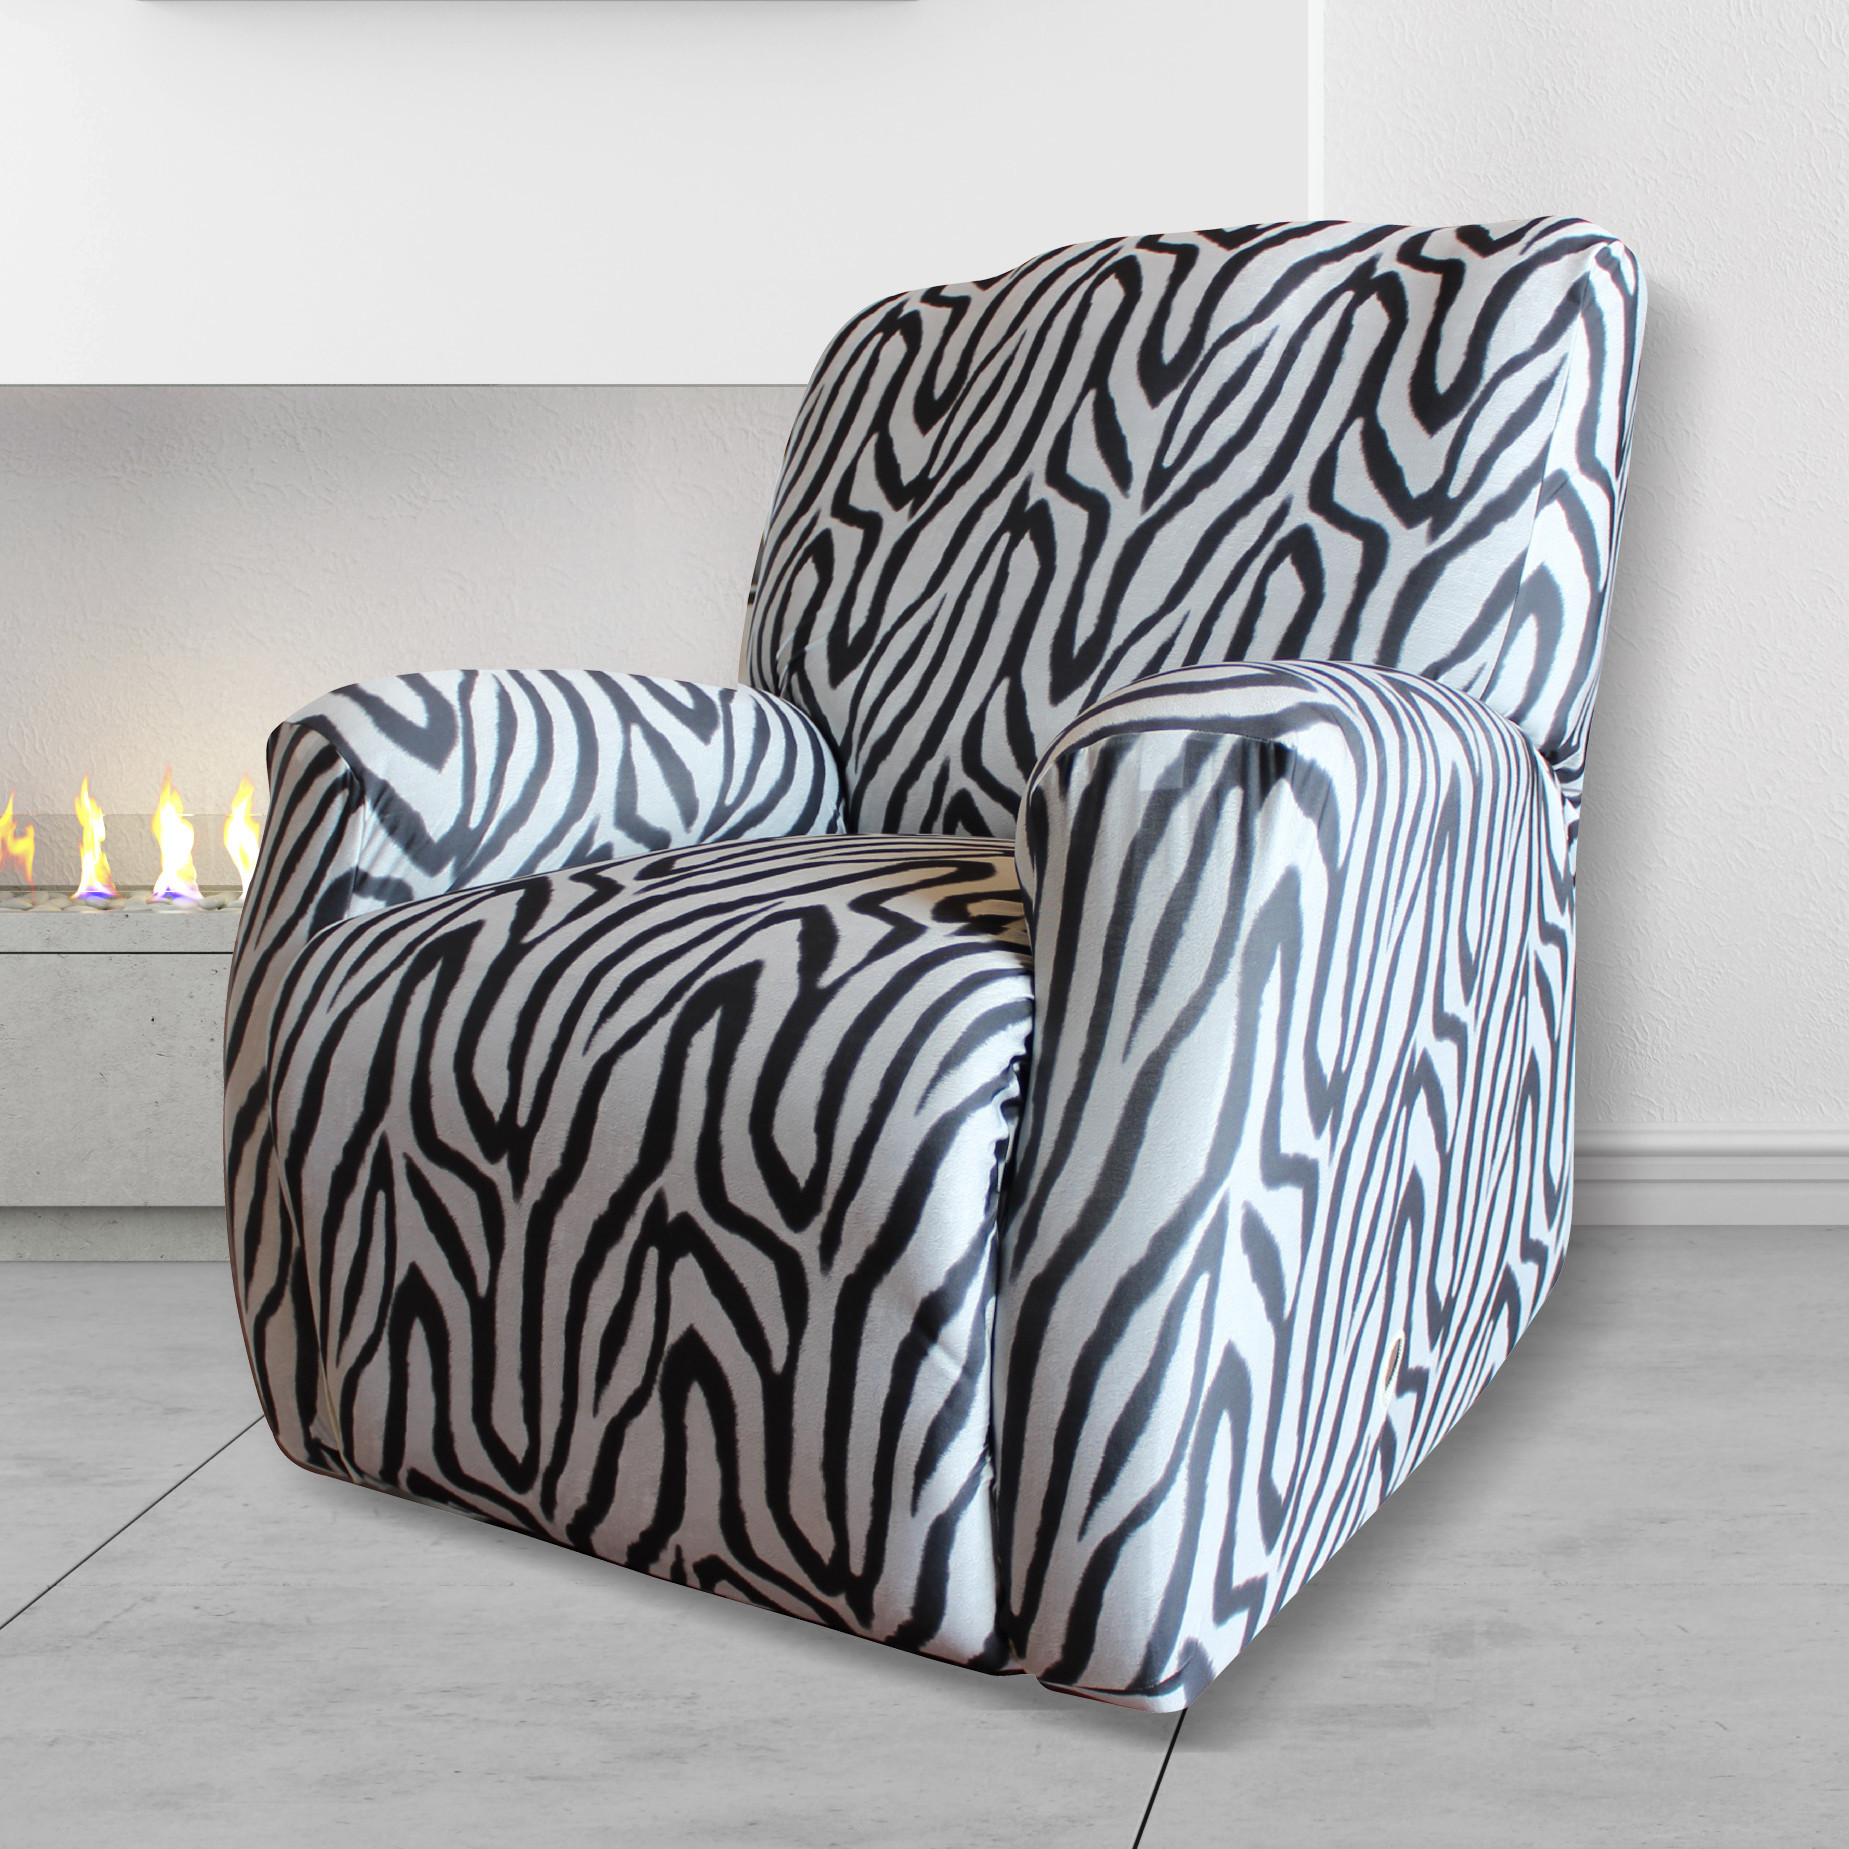 Statement Prints Zebra Recliner Cover